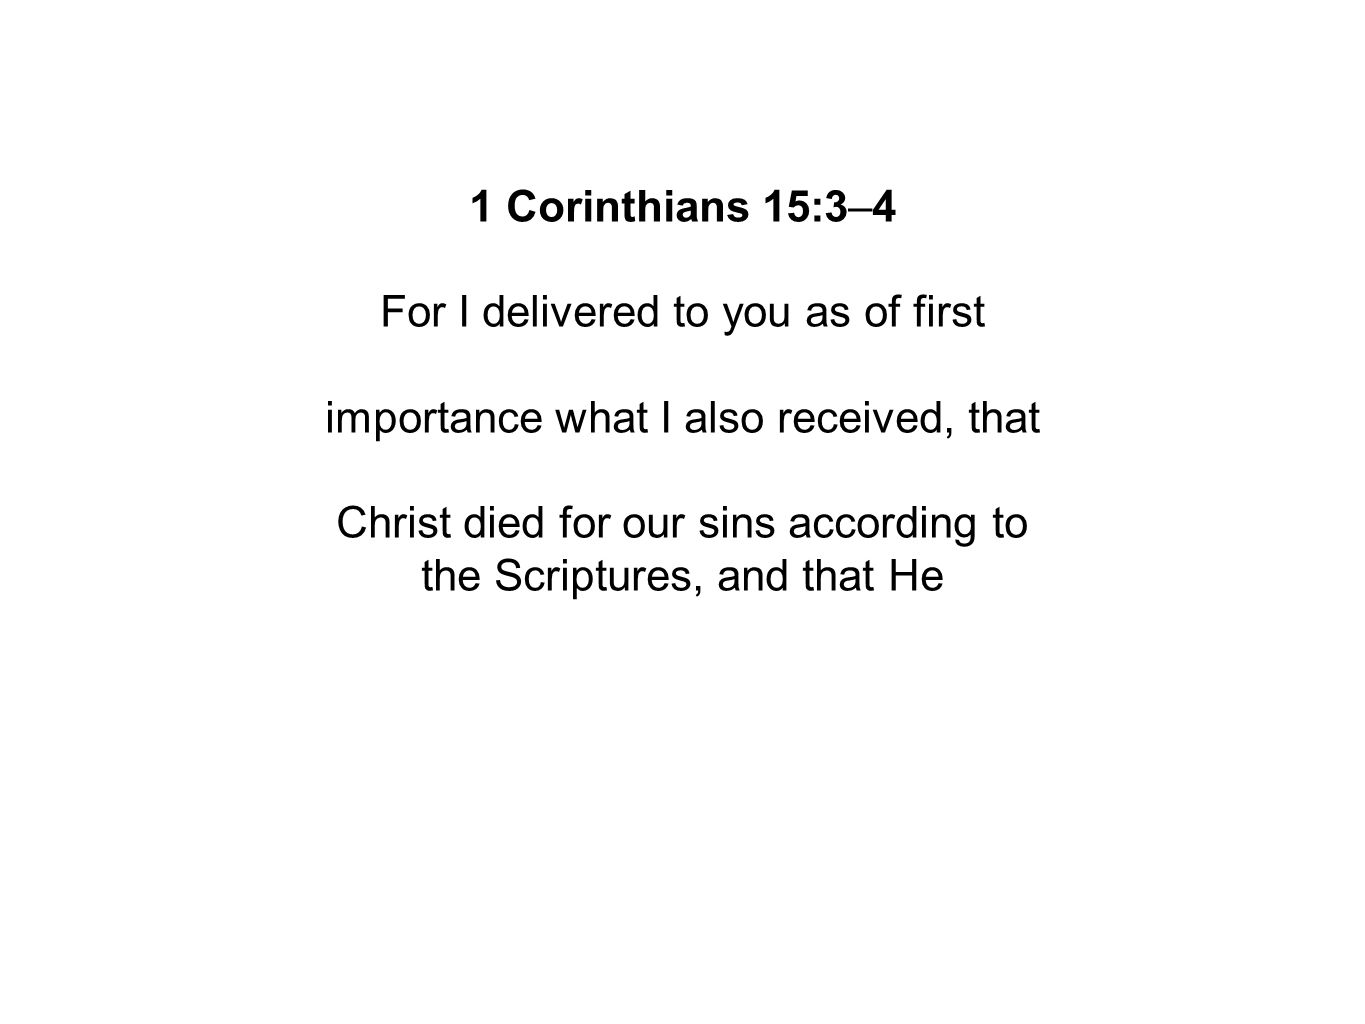 1 Corinthians 15:3–4 For I delivered to you as of first importance what I also received, that Christ died for our sins according to the Scriptures, and that He